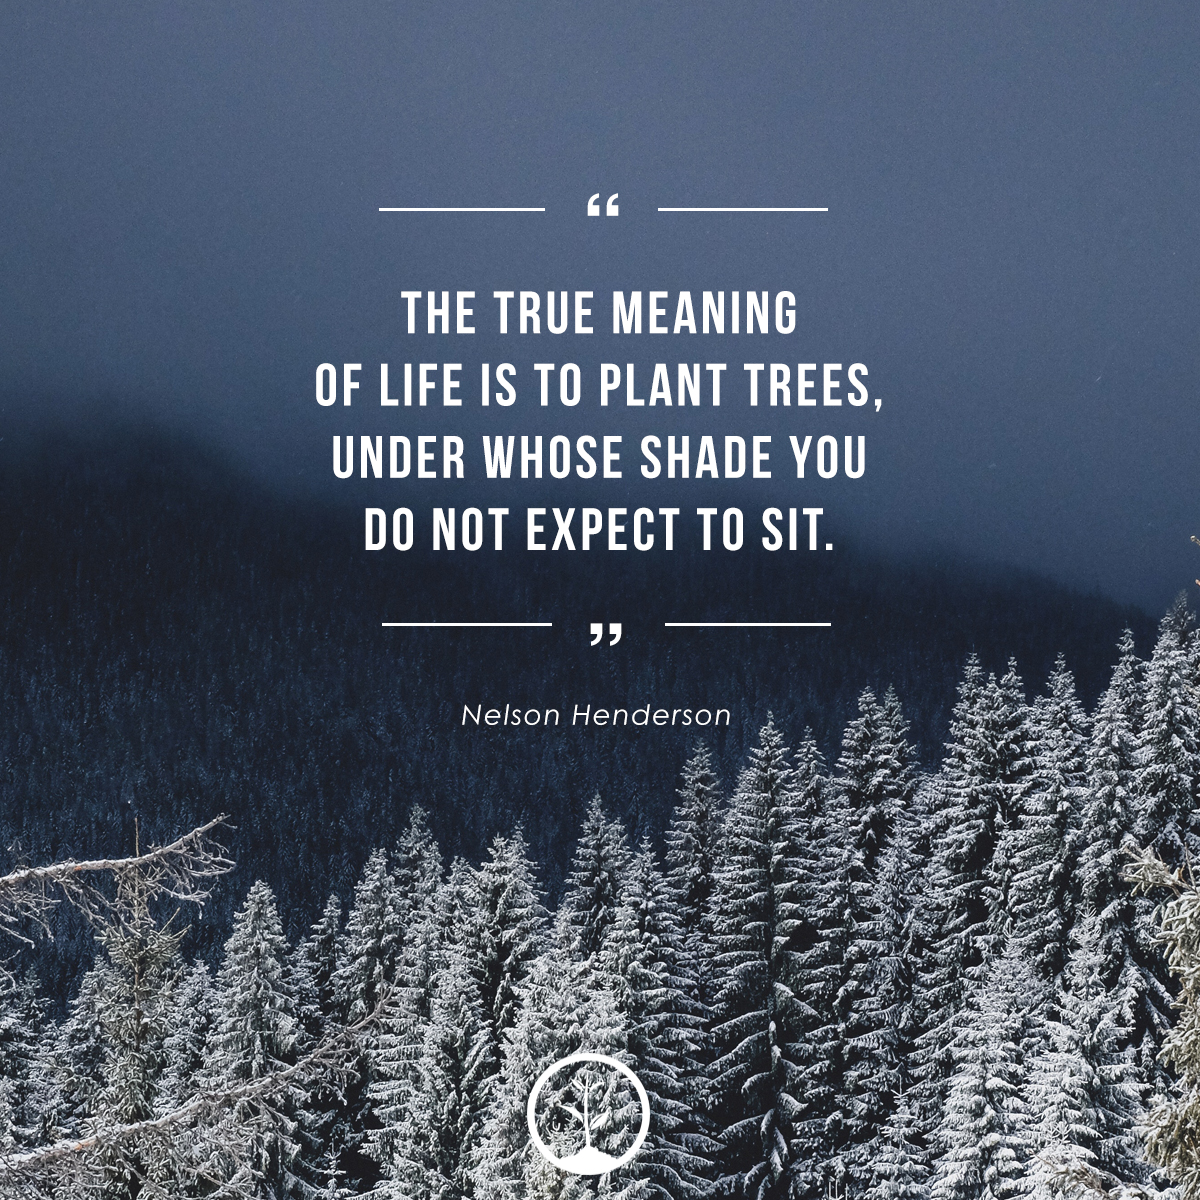 Inspirational Quotes About Trees | One Tree Planted